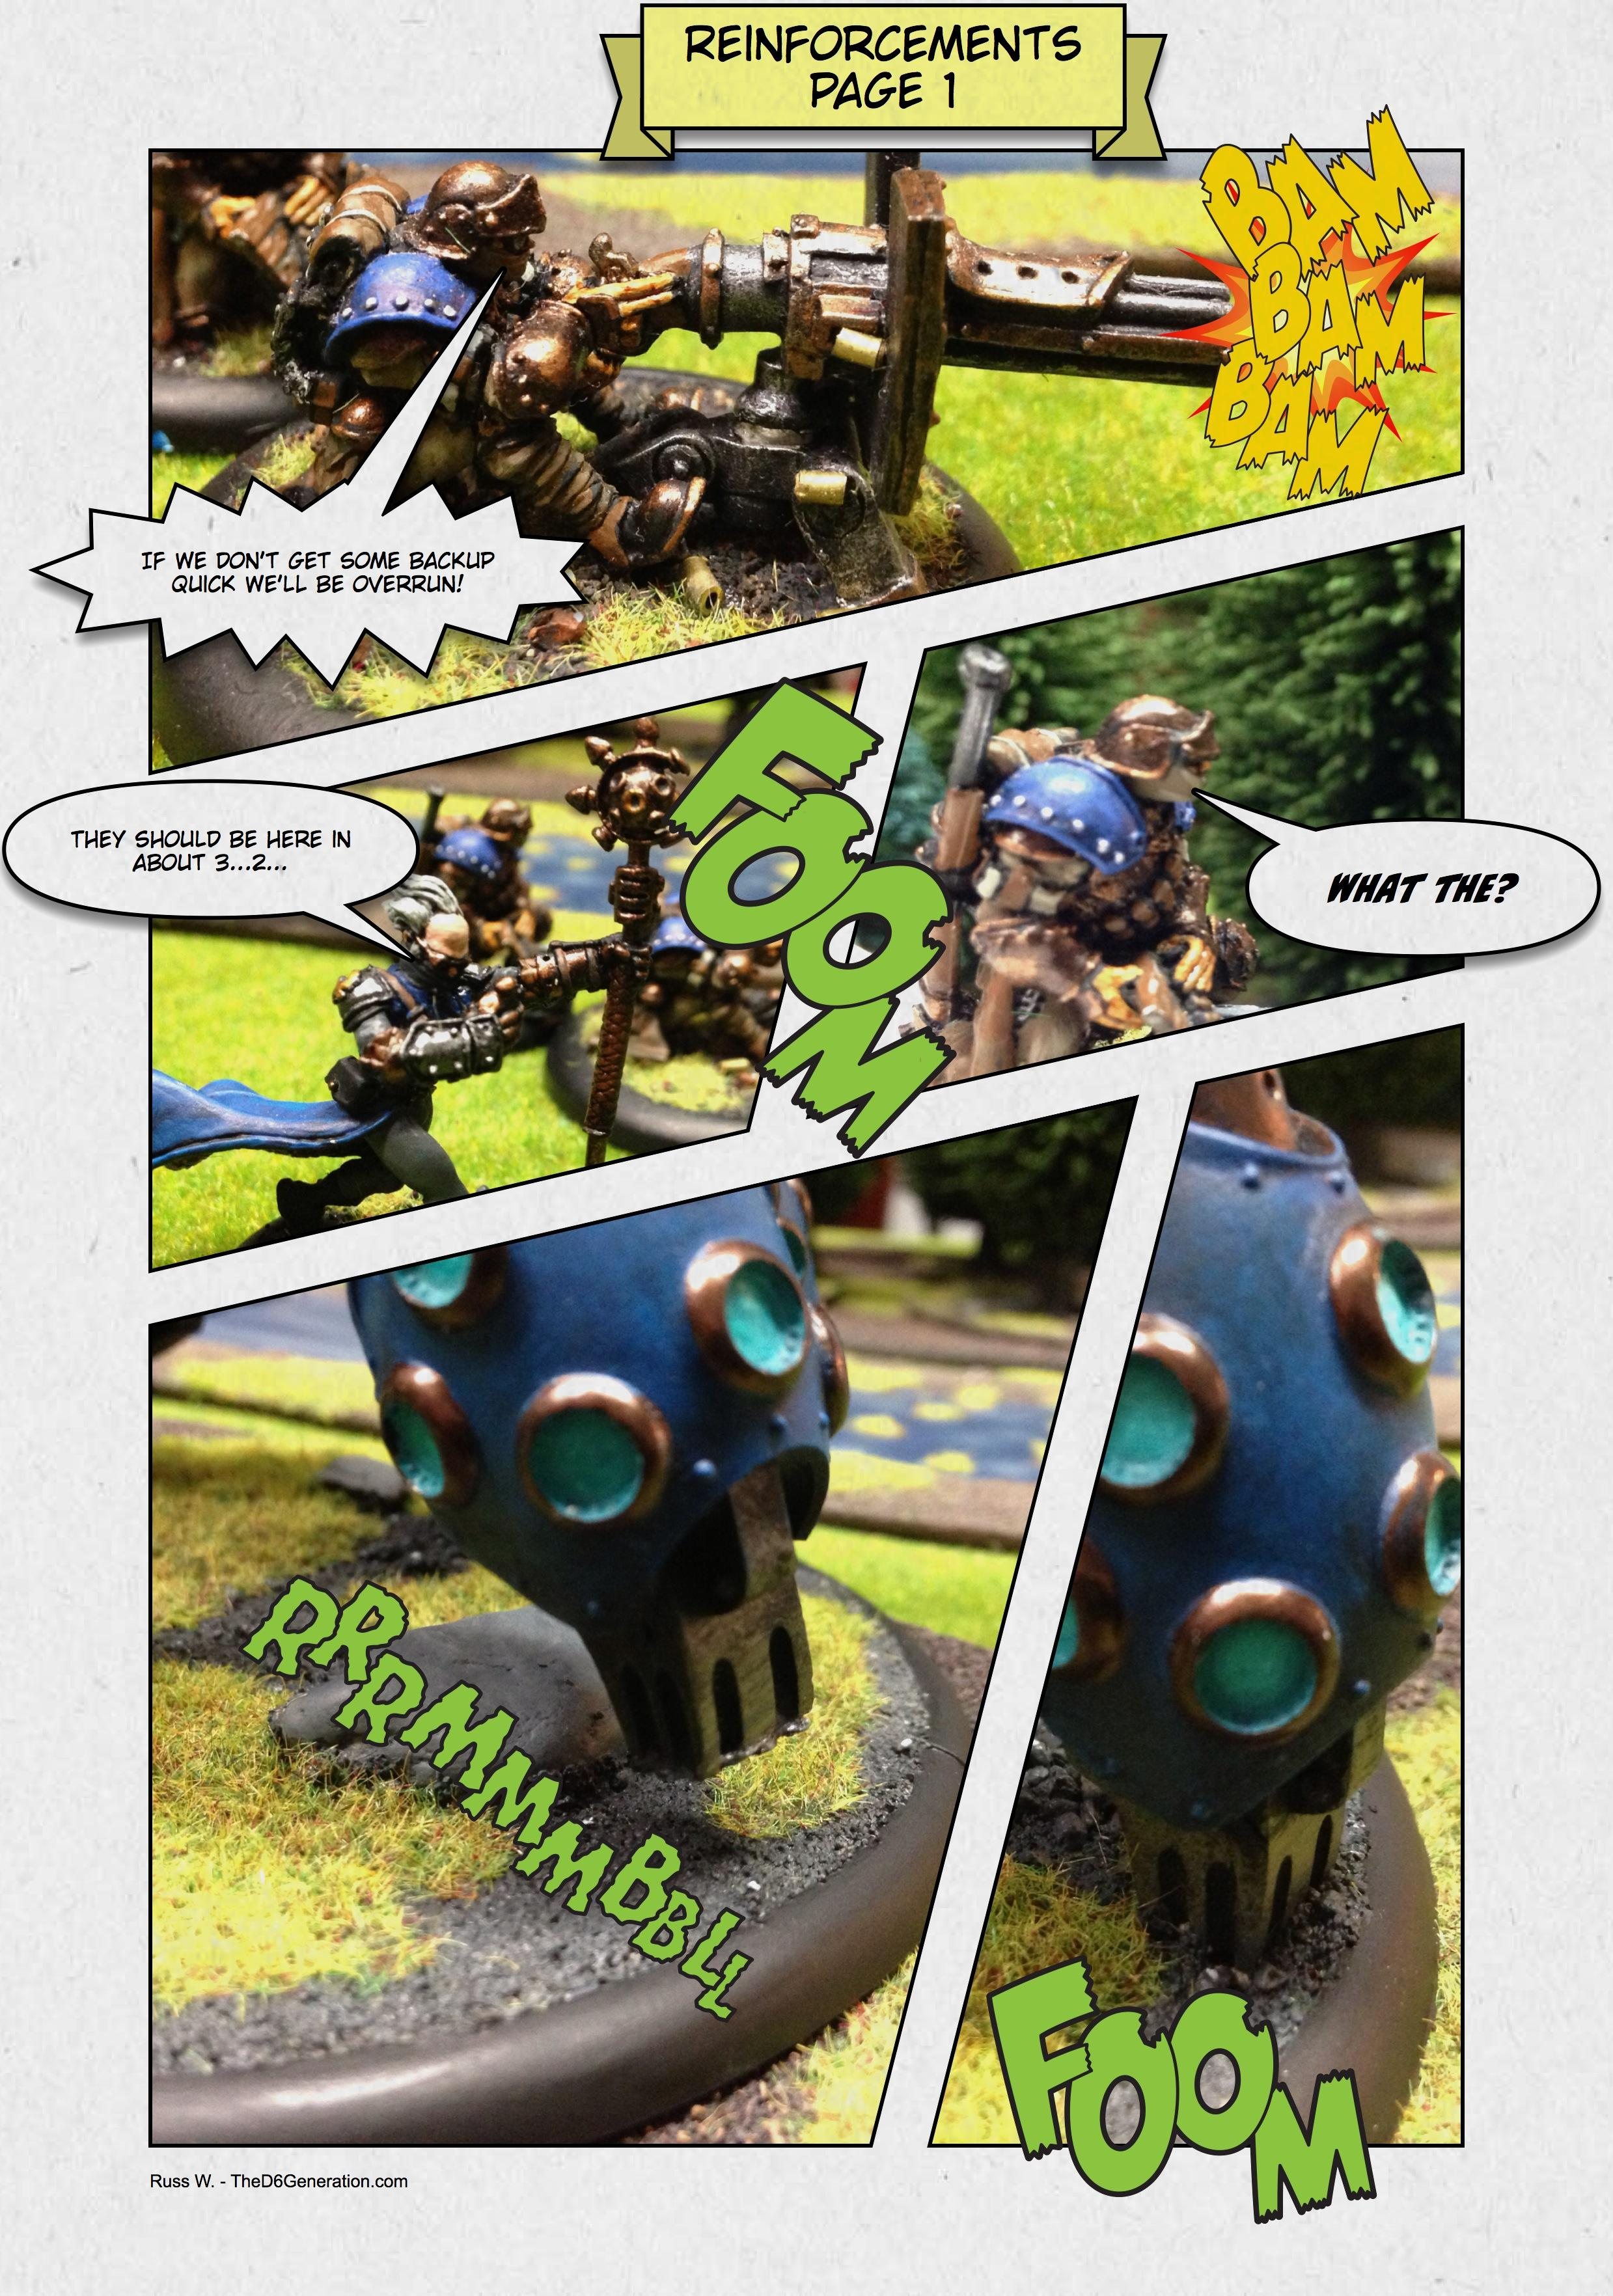 Reinforcements - Page 1